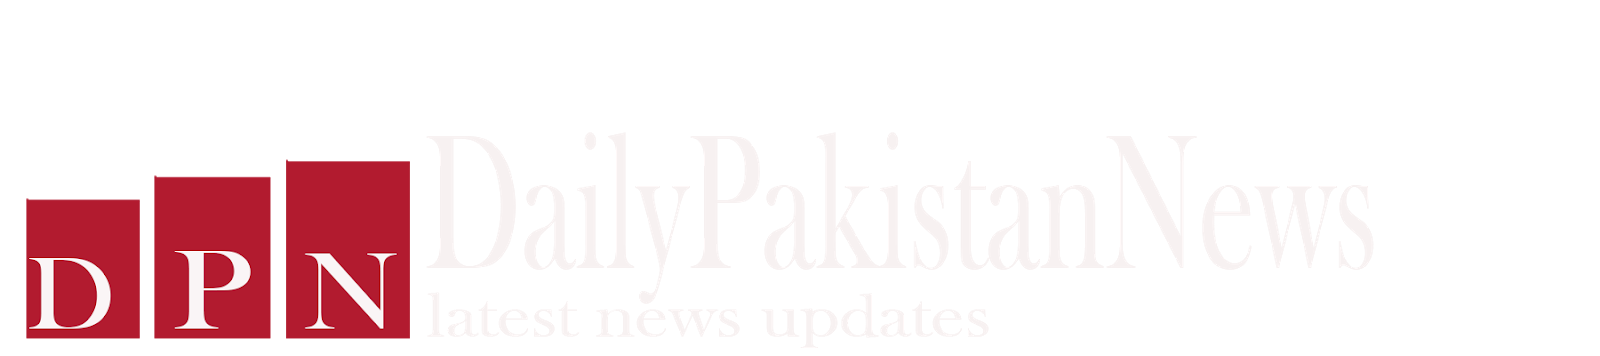 Daily Pakistan News | latest news updates |